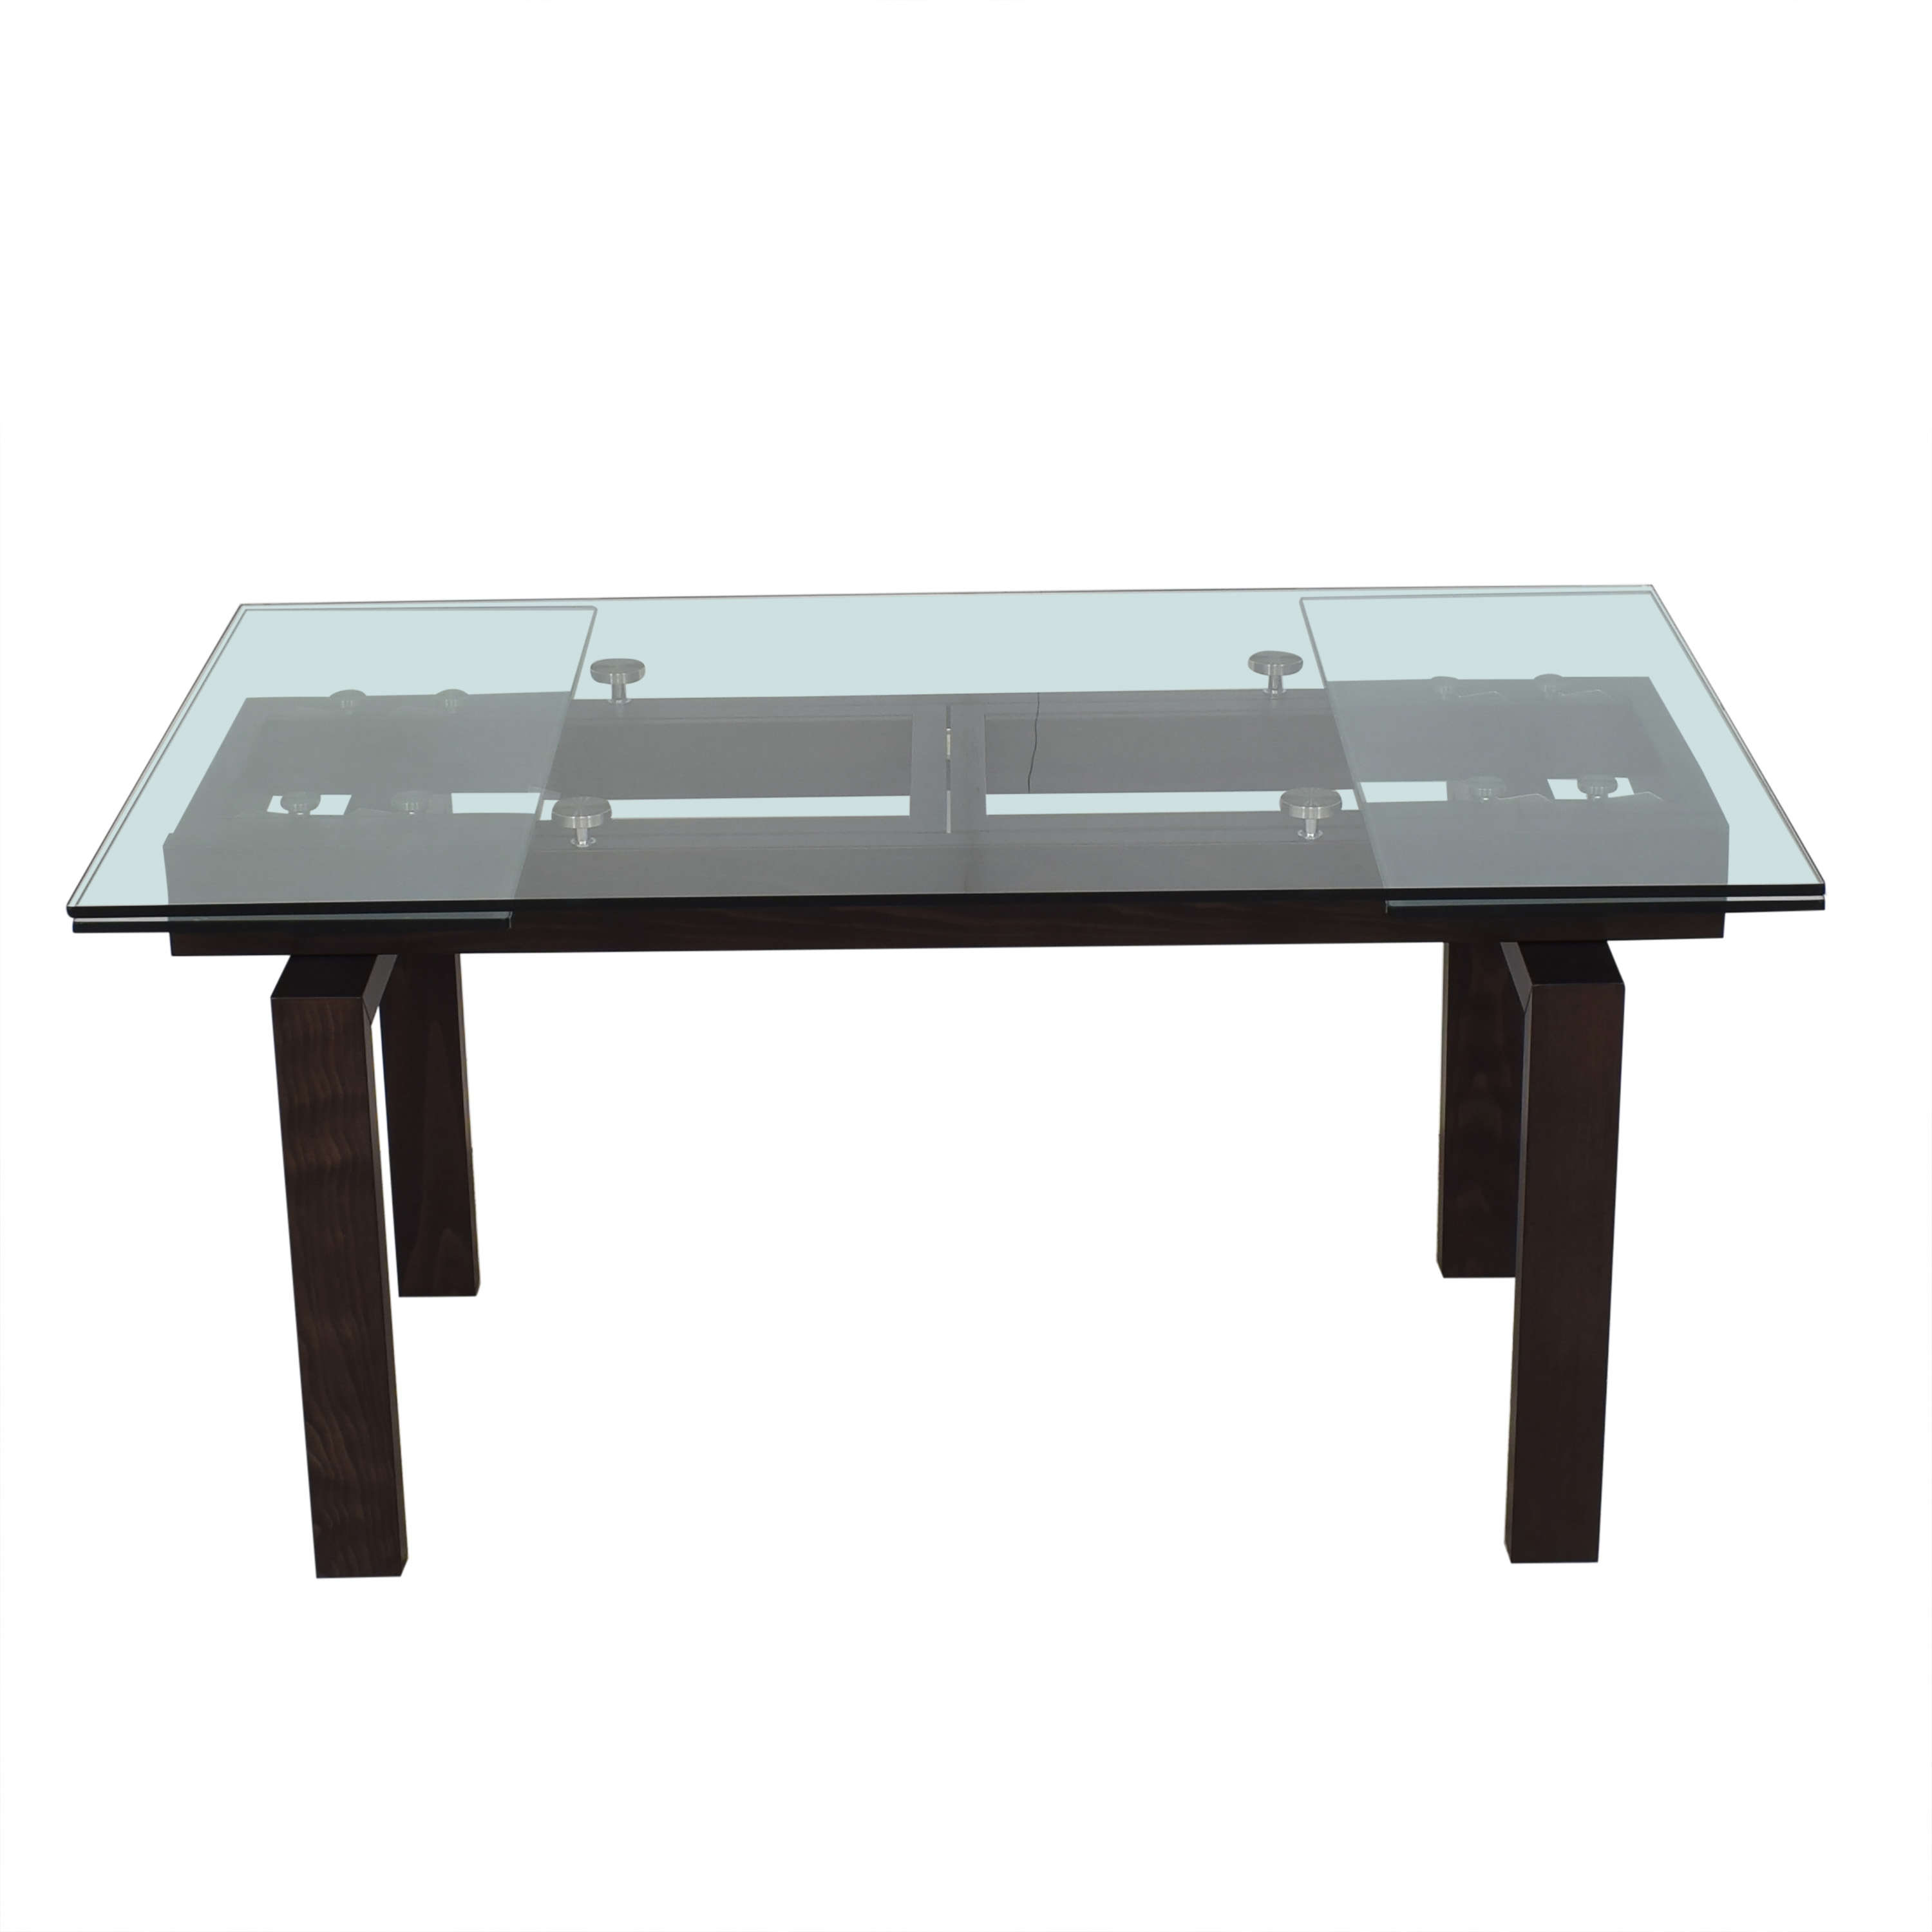 shop Calligaris Calligaris Hyper Extension Dining Table online